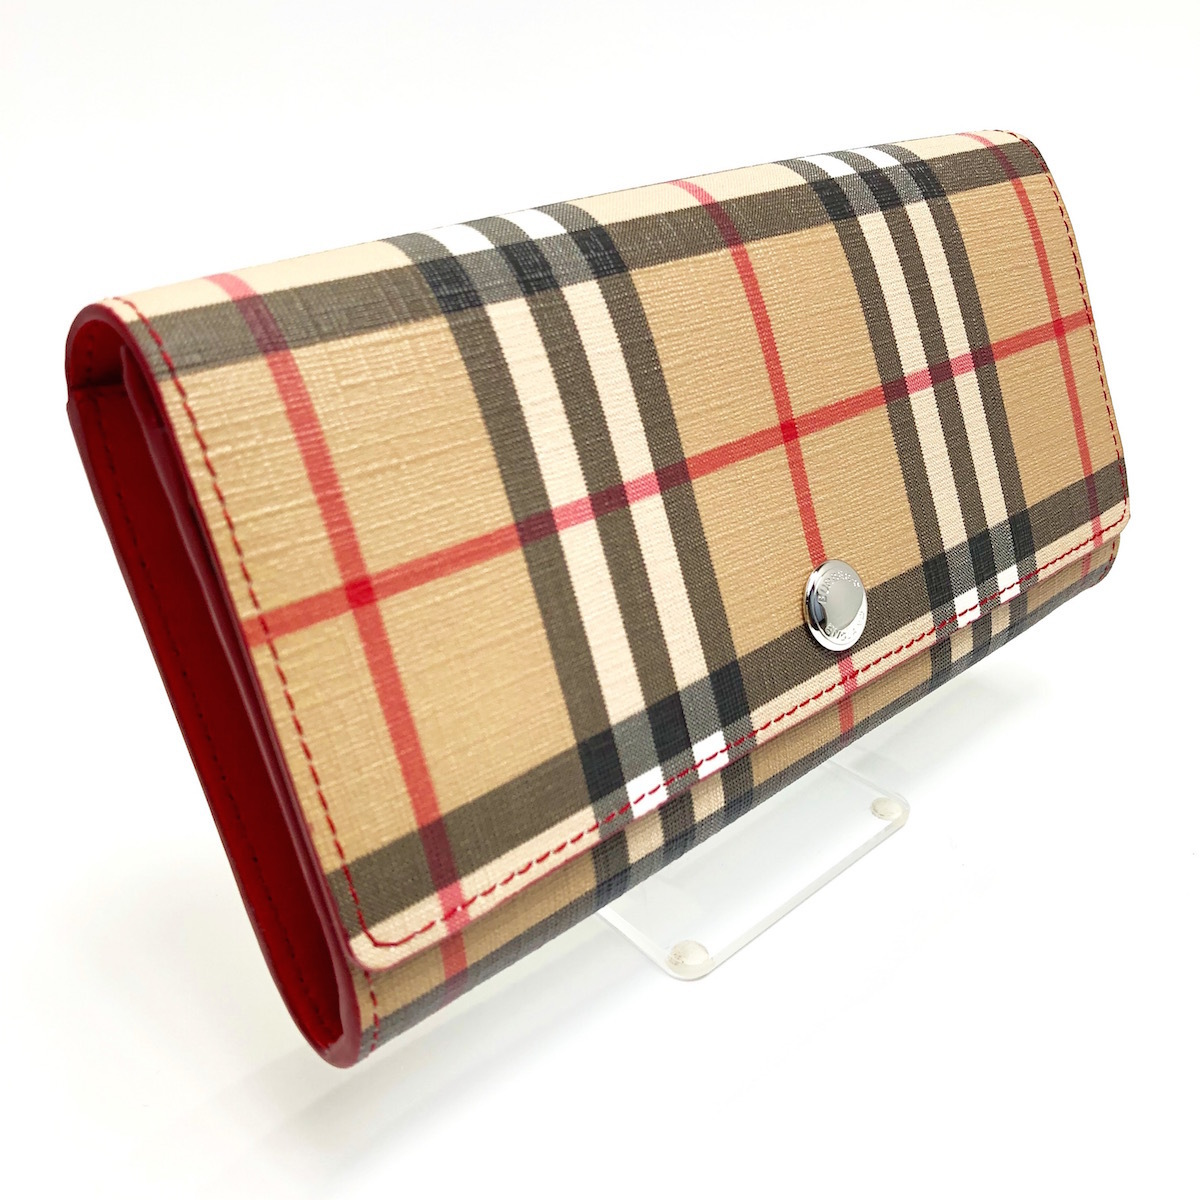 shop burberry london wallets & card holders